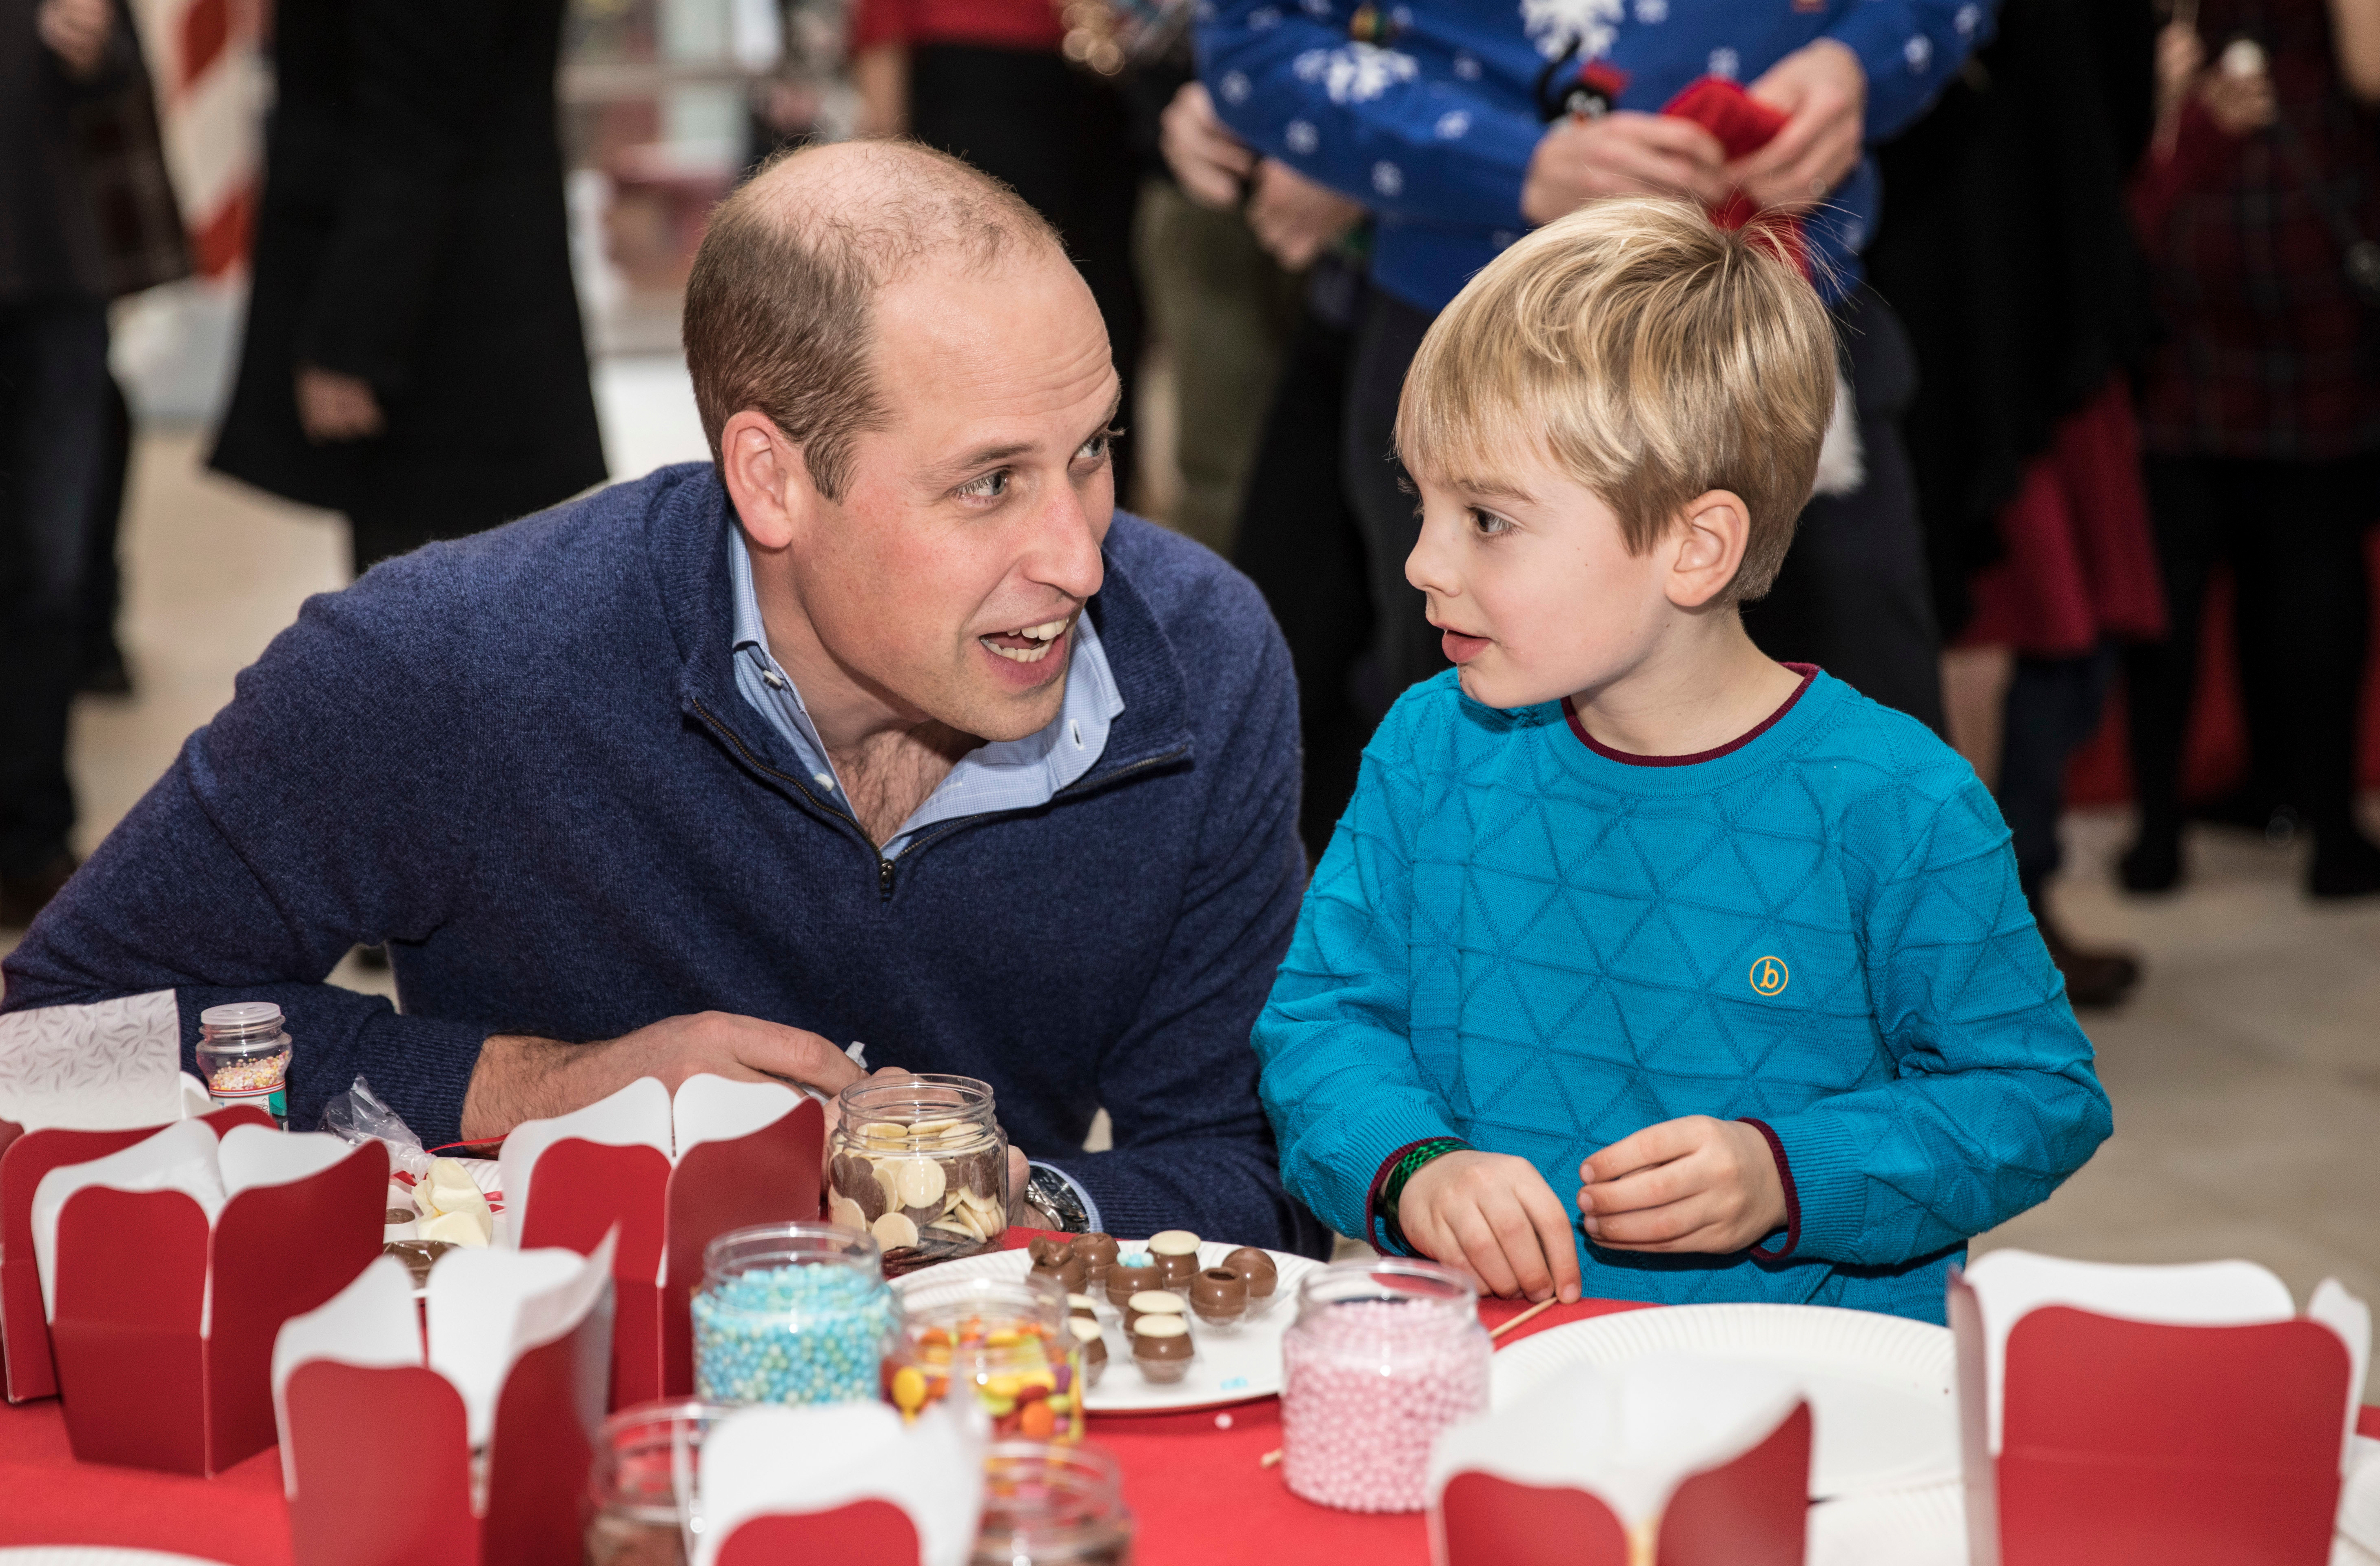 Prince George and Princess Charlotte 'disappointed' they weren't allowed to attend Christmas party with Kate and William